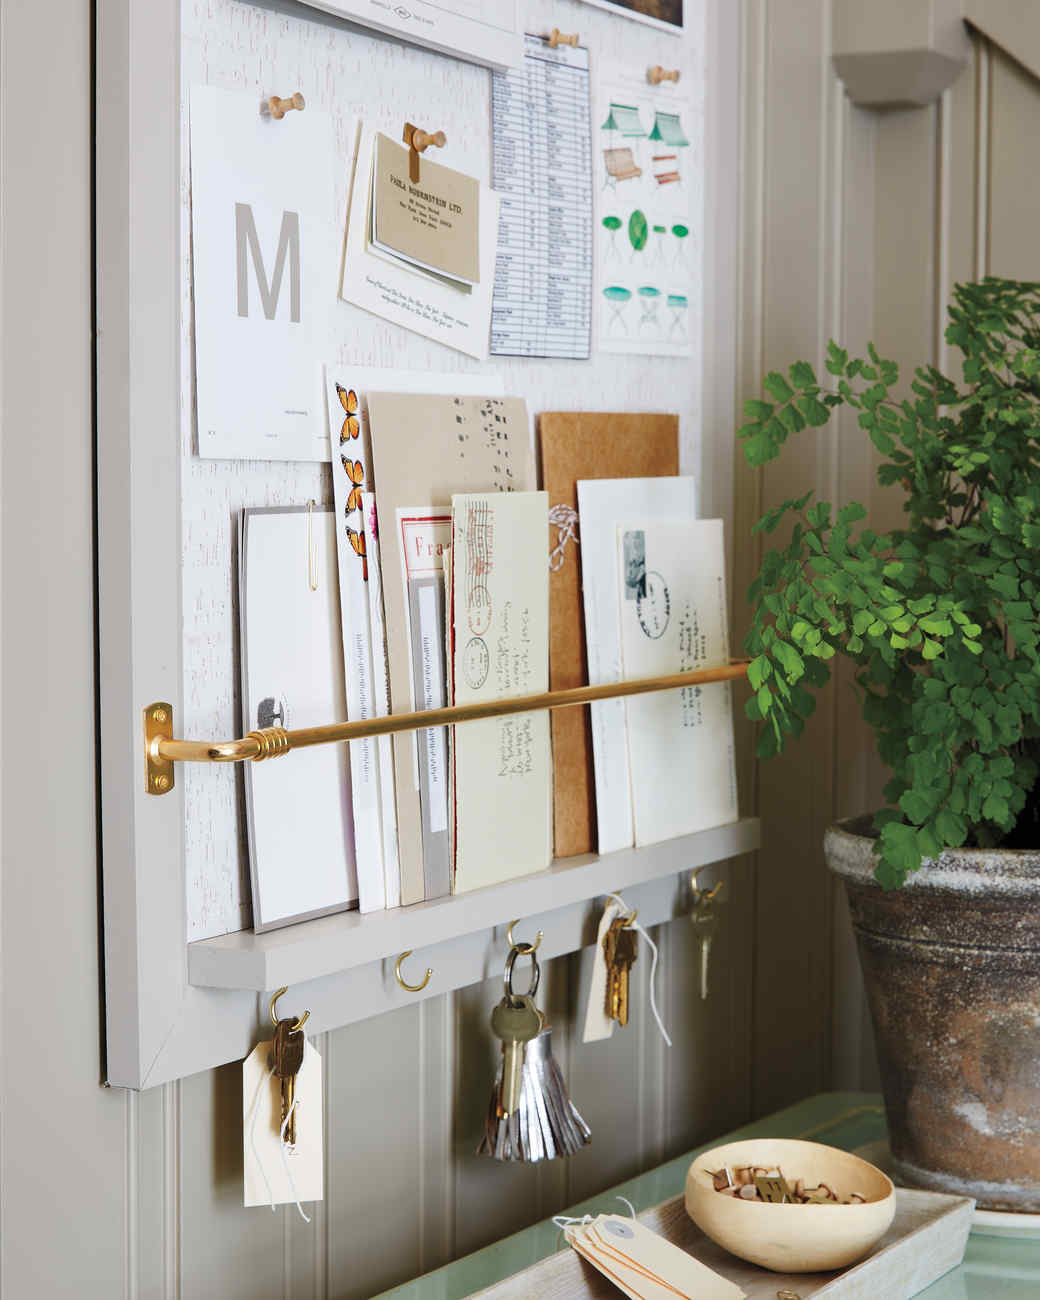 4 Tips to Make Keeping Your Snail Mail Under Control (Once and for All!)